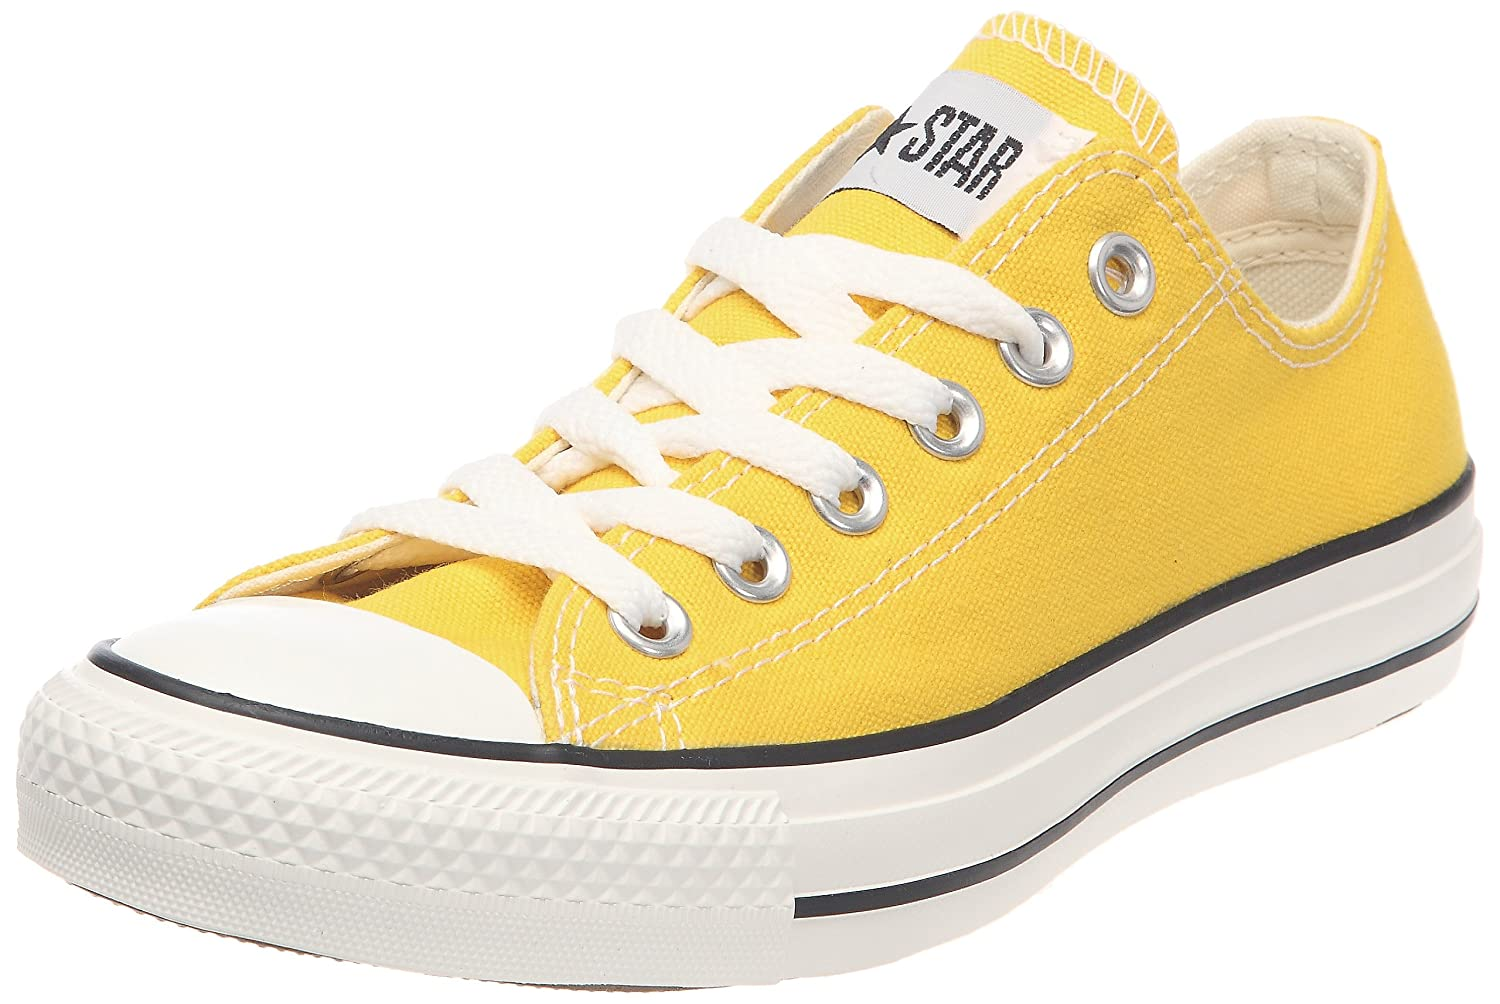 Converse Ctas Hi, Core Hi, Baskets mode 17639 mixte Converse adulte 8b837f0 - latesttechnology.space